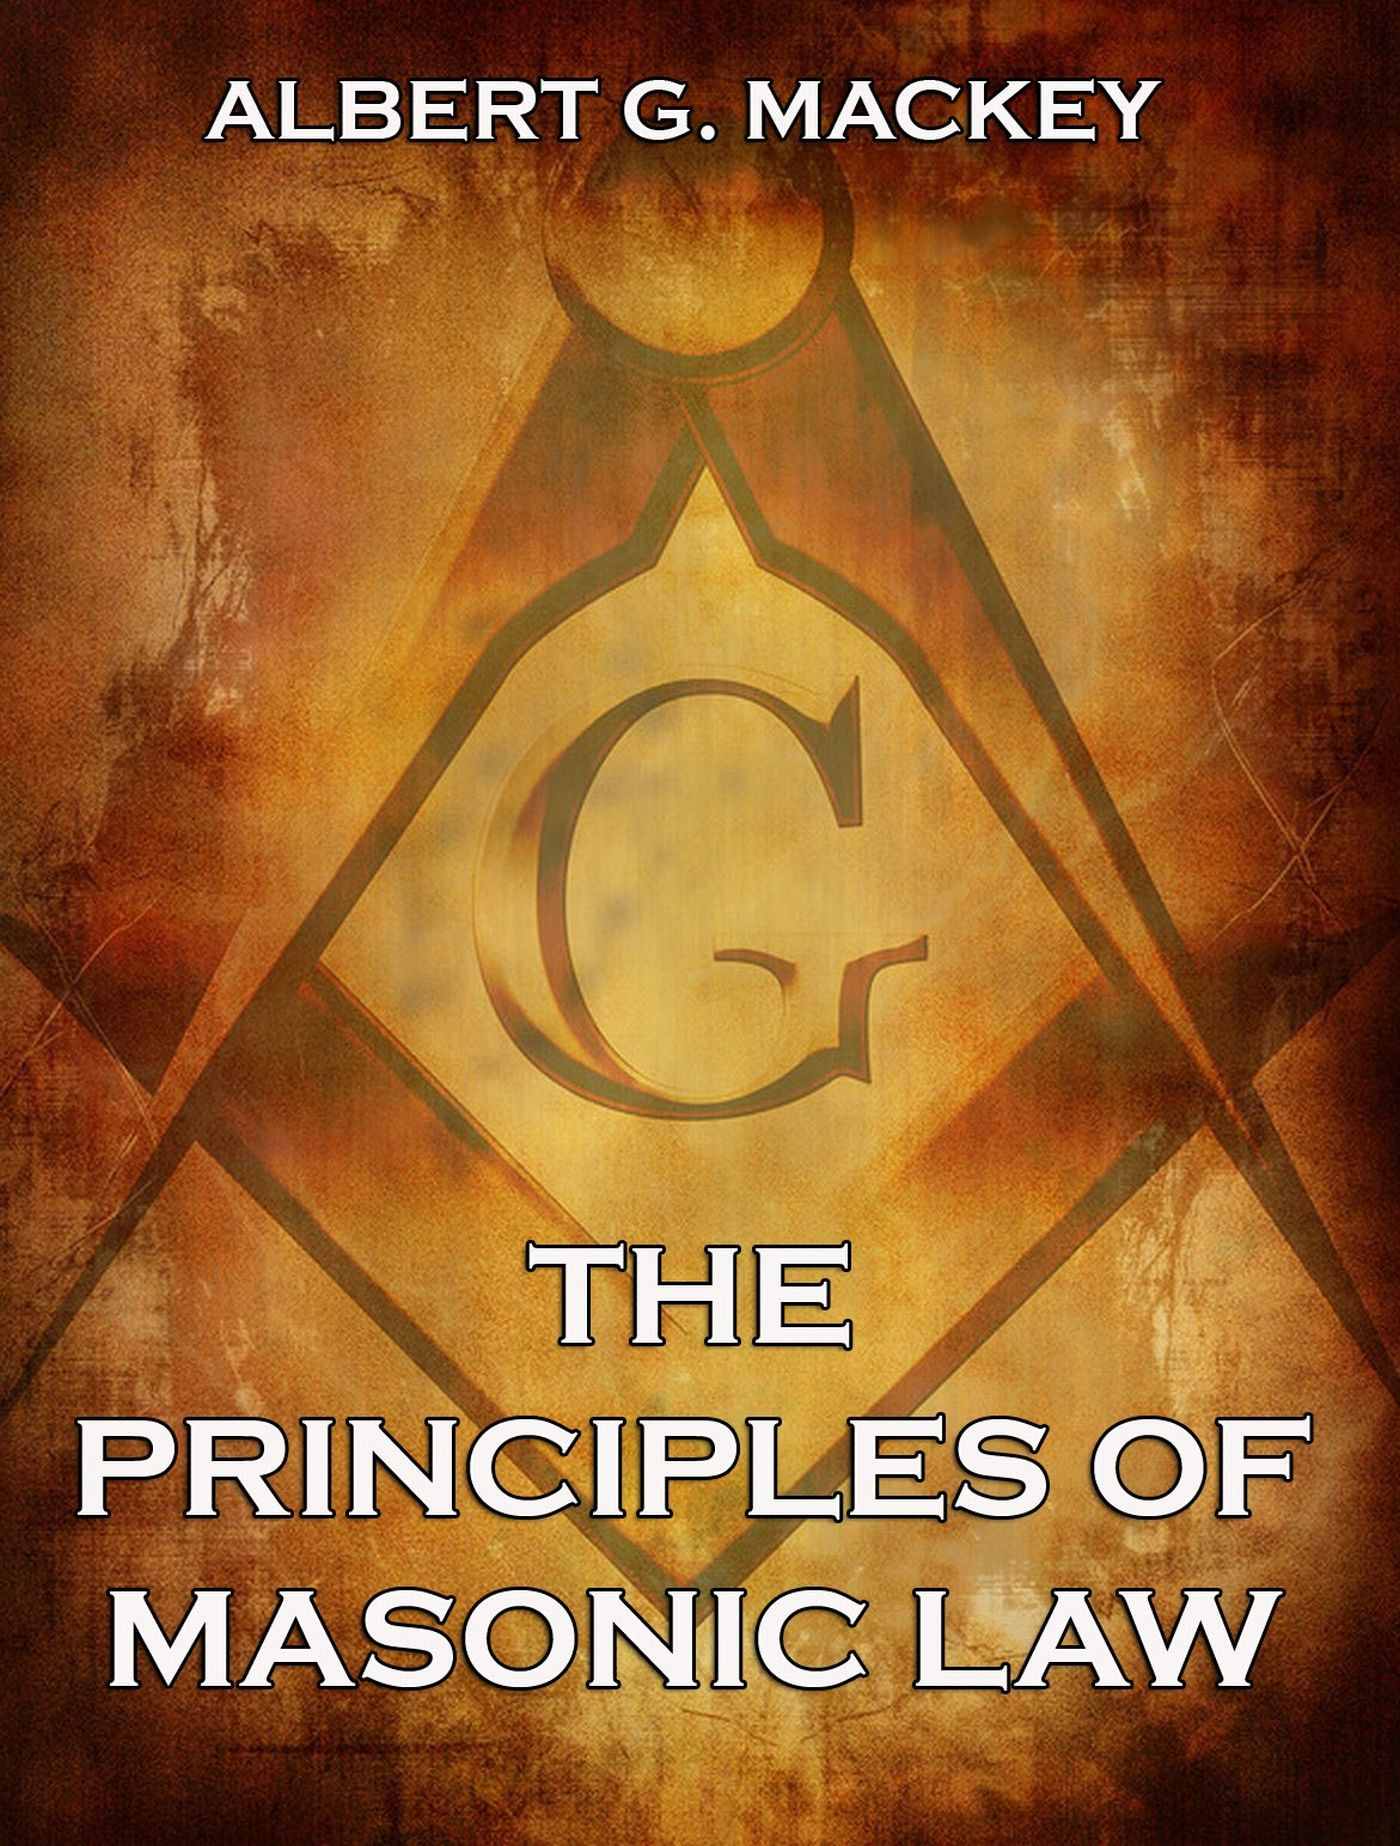 Albert G. Mackey The Principles of Masonic Law humanitarian principles